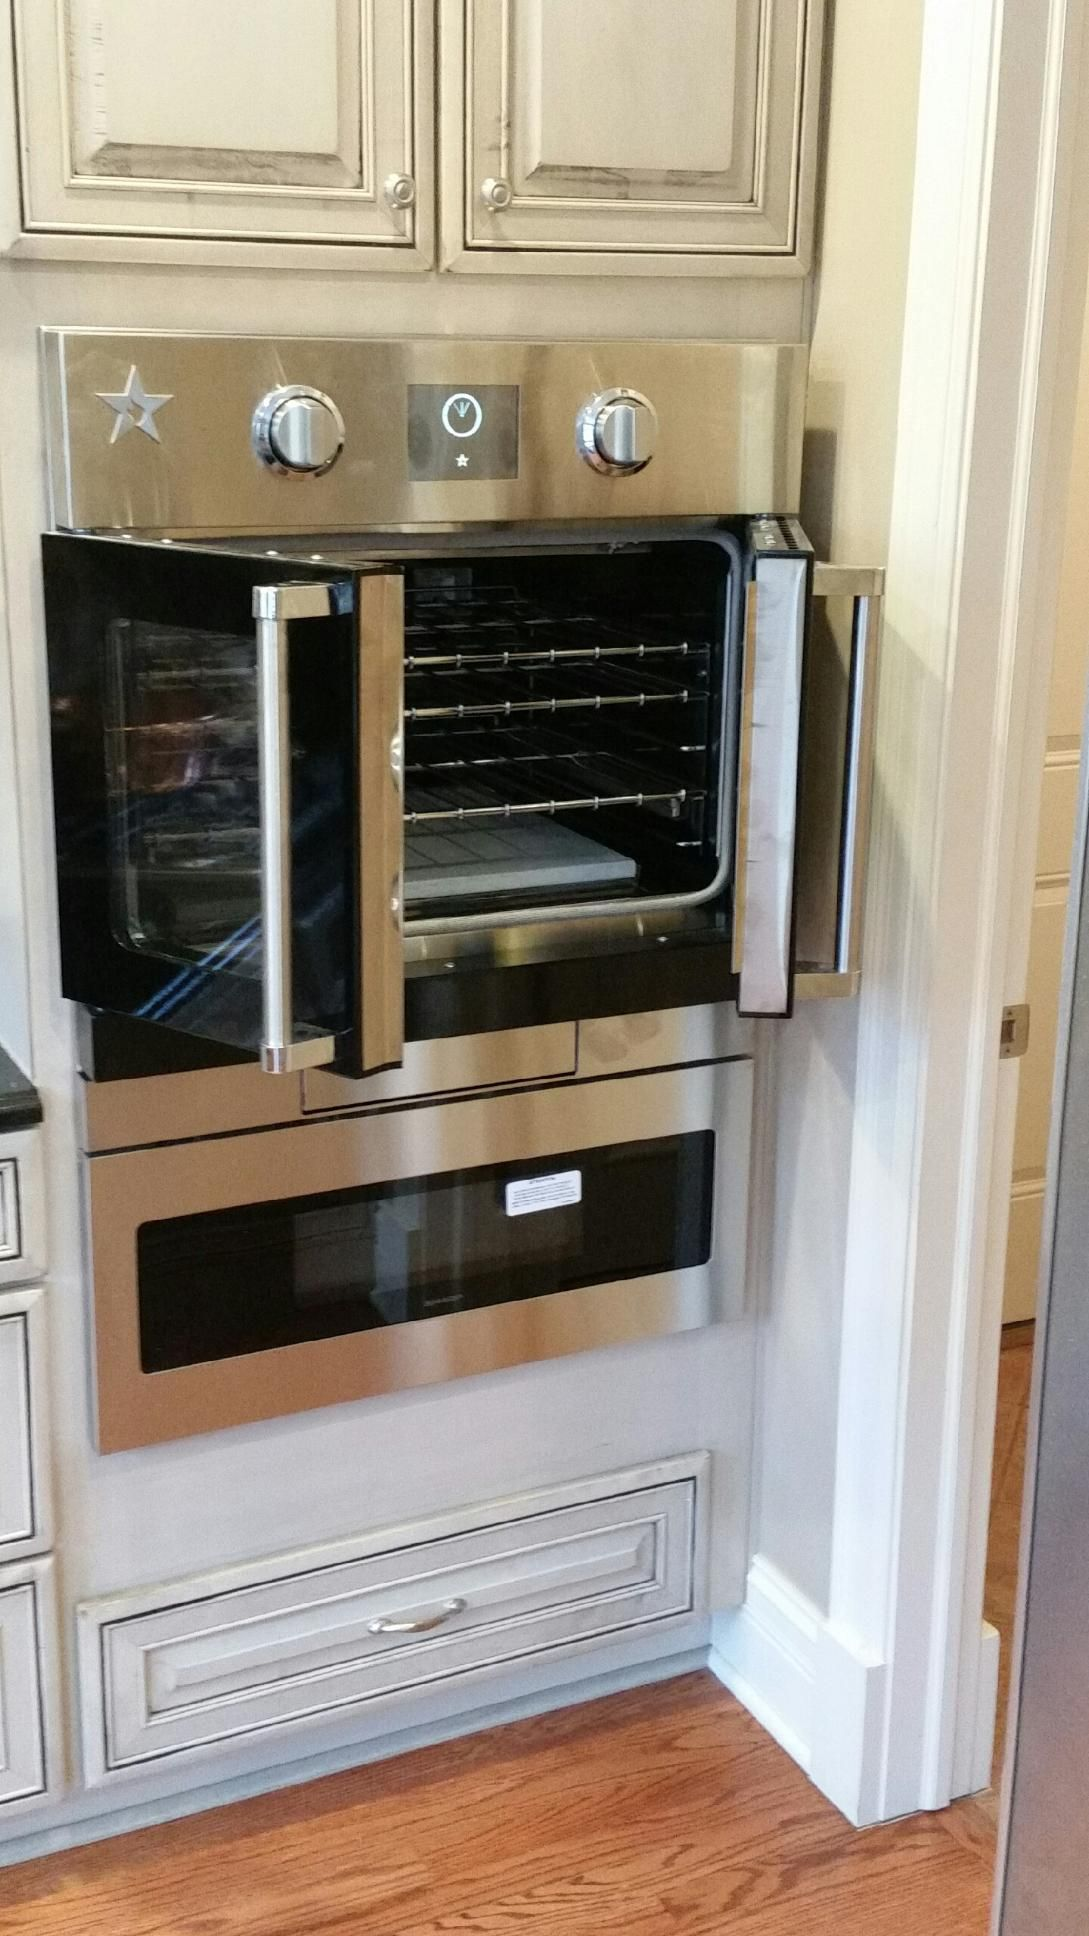 What You See Is A Bluestar Wall Oven With French Doors To